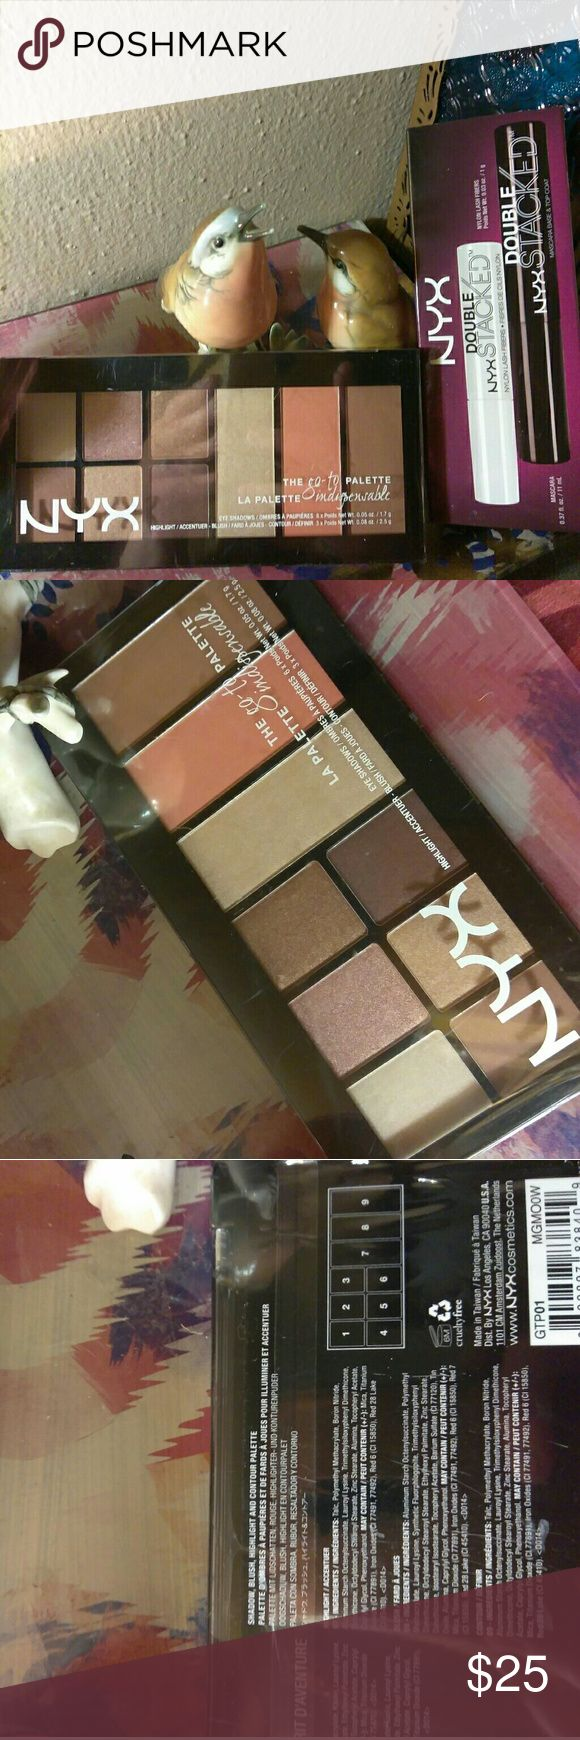 NYX Eye Bundle NYX Wanderlust go to Palette with highlight, contour , blush & eyeshadow- retails at 17$ &  NYX Double Stacked mascara  Retails at 15$  Total value 32$ NYX Makeup Eyeshadow